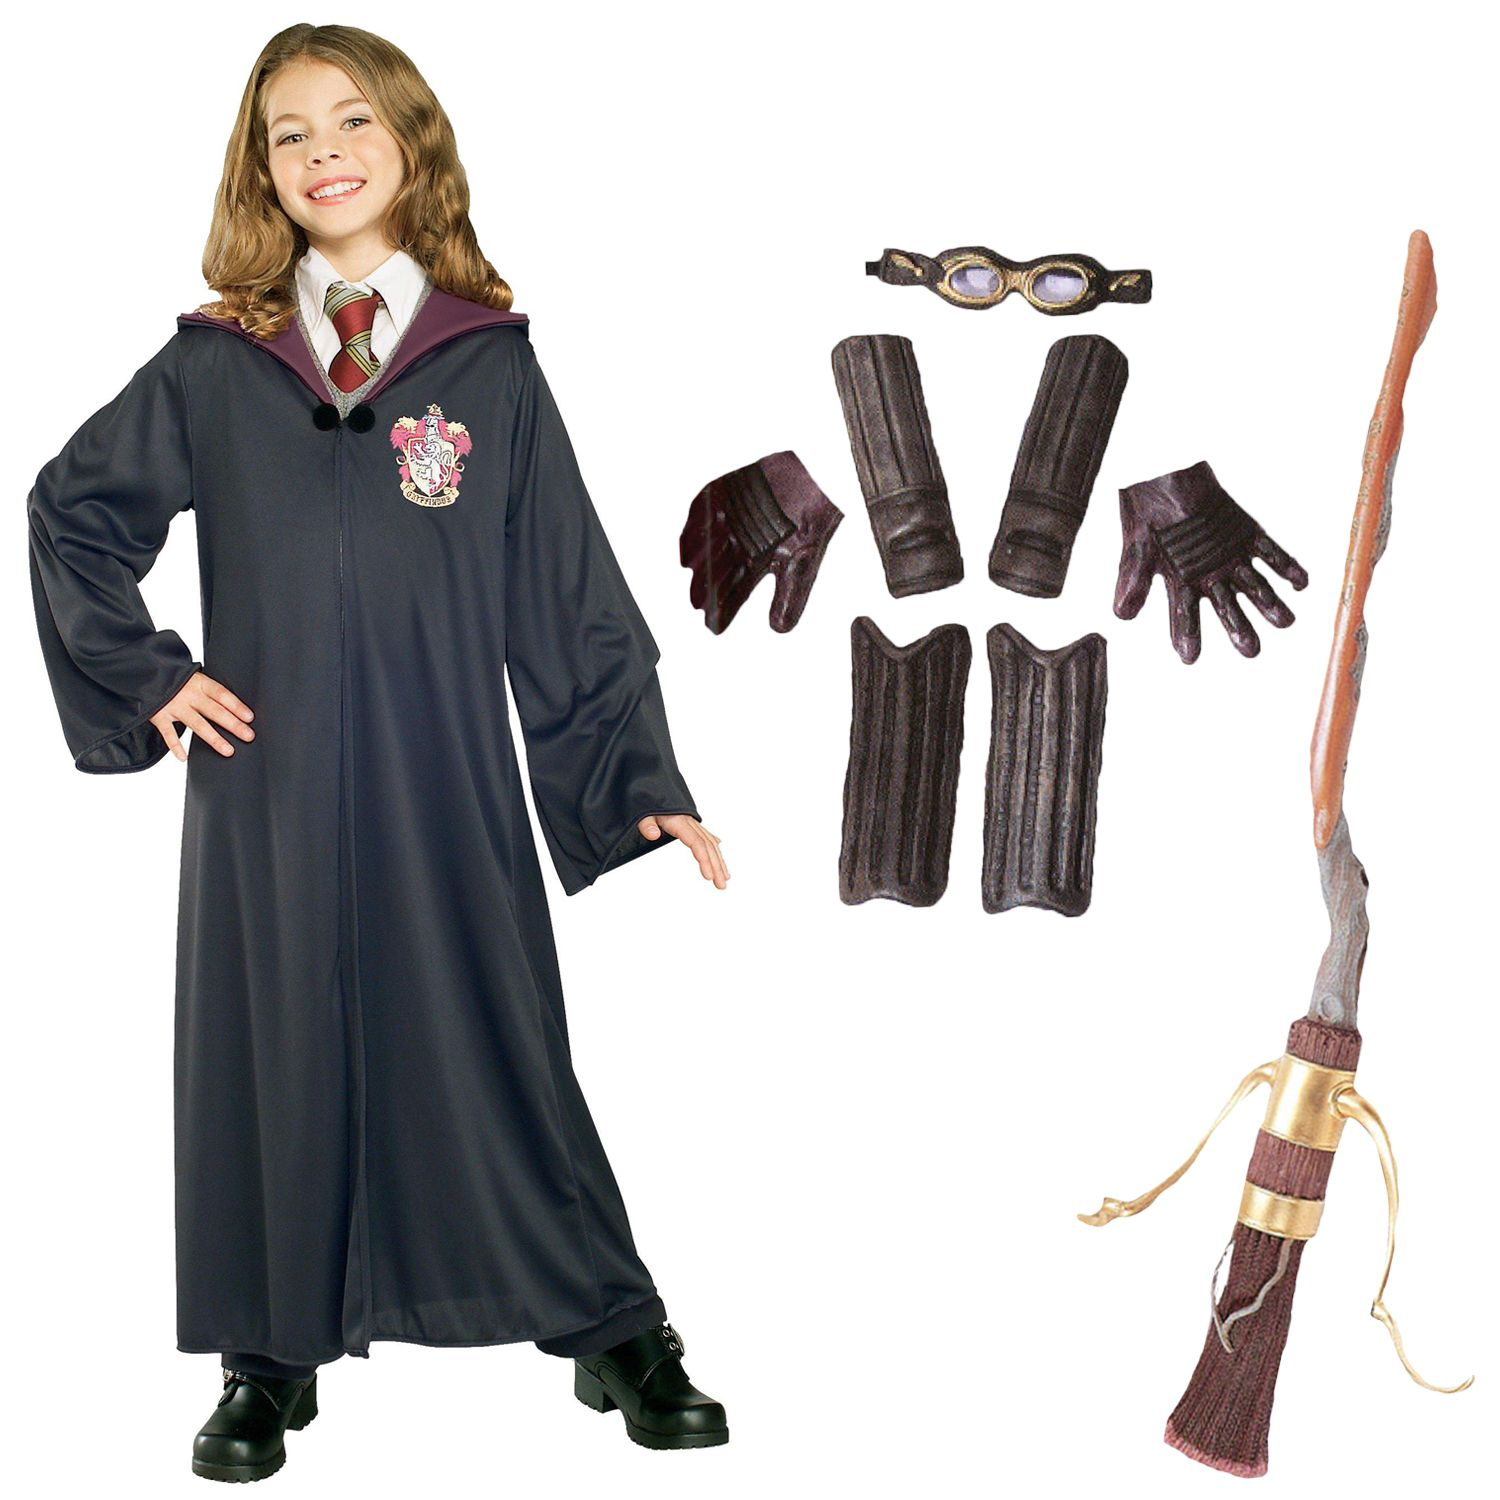 Harry Potter - Costumes from the movie Harry Potter